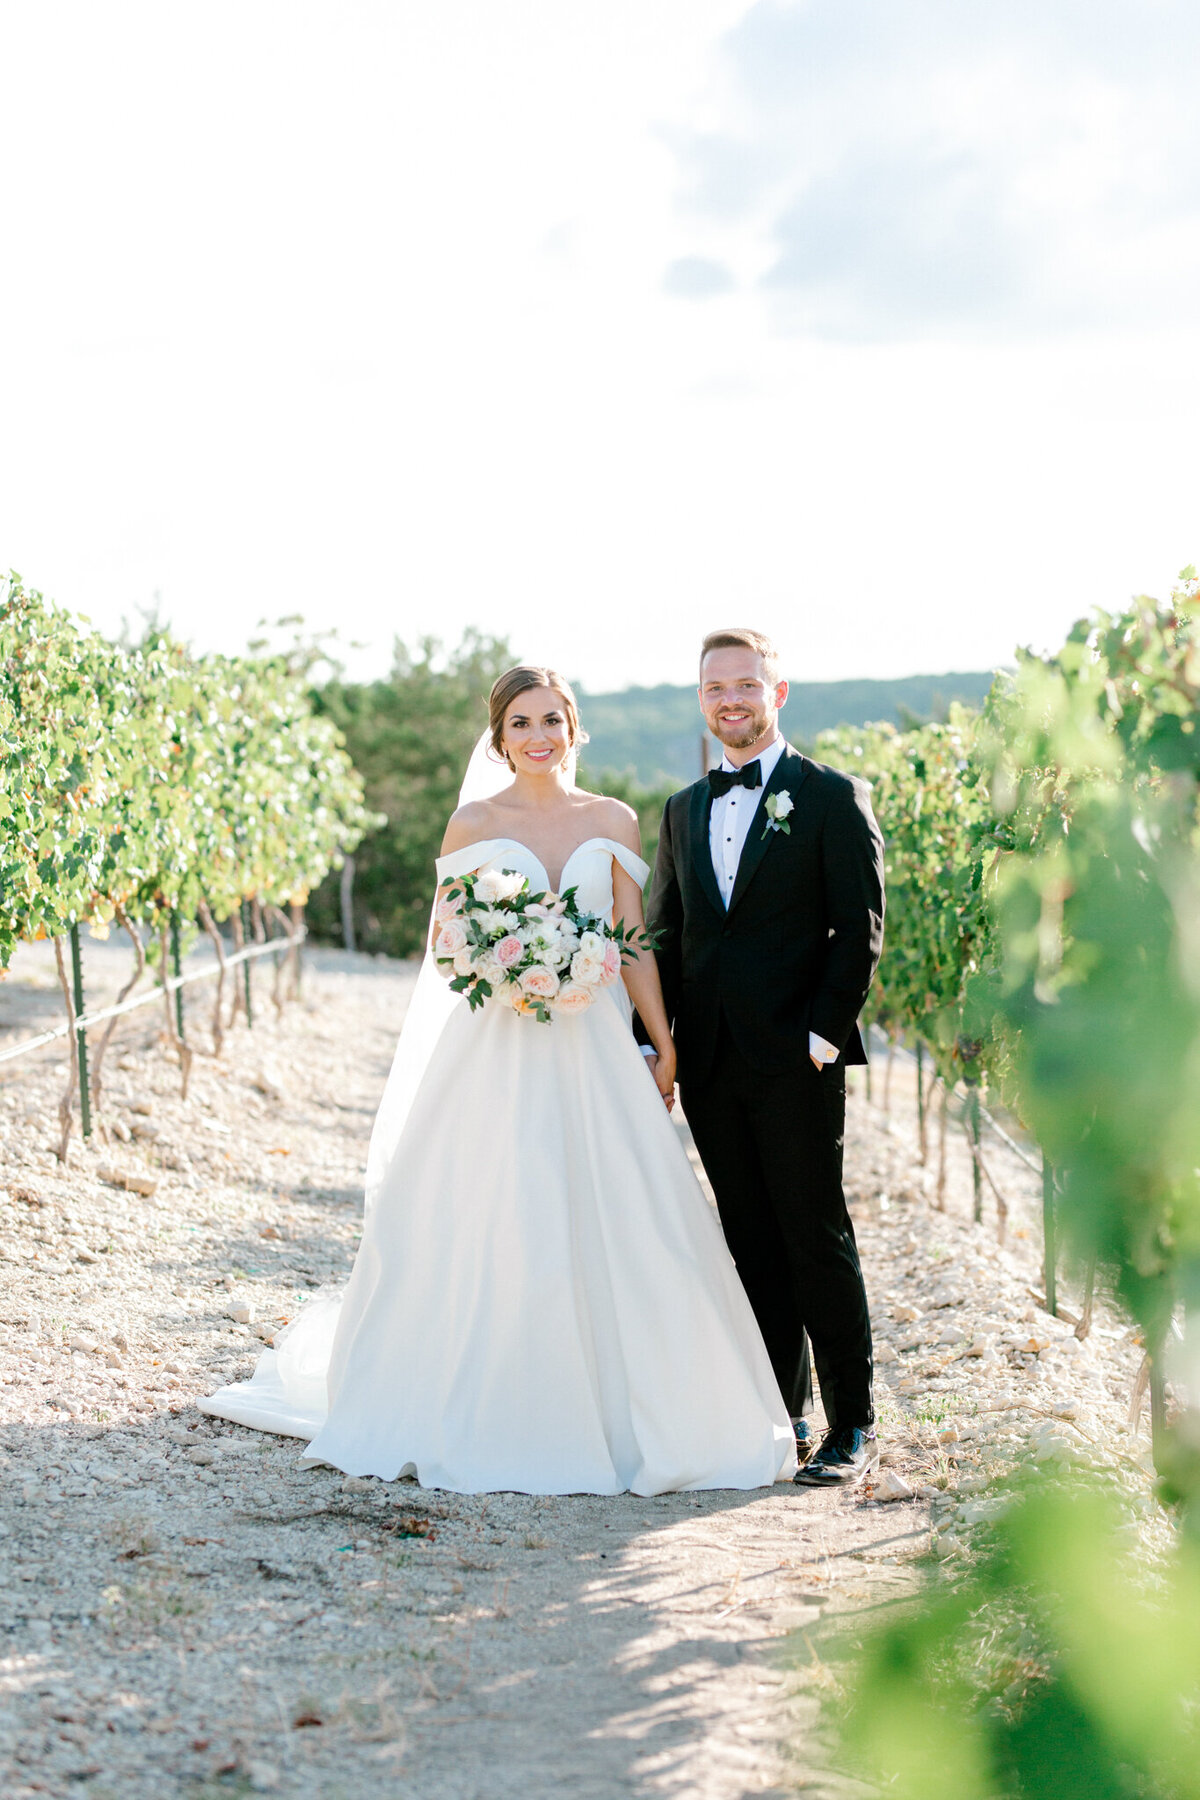 Lexi Broughton & Garrett Greer Wedding at Dove Ridge Vineyards | Sami Kathryn Photography | Dallas Wedding Photography-127